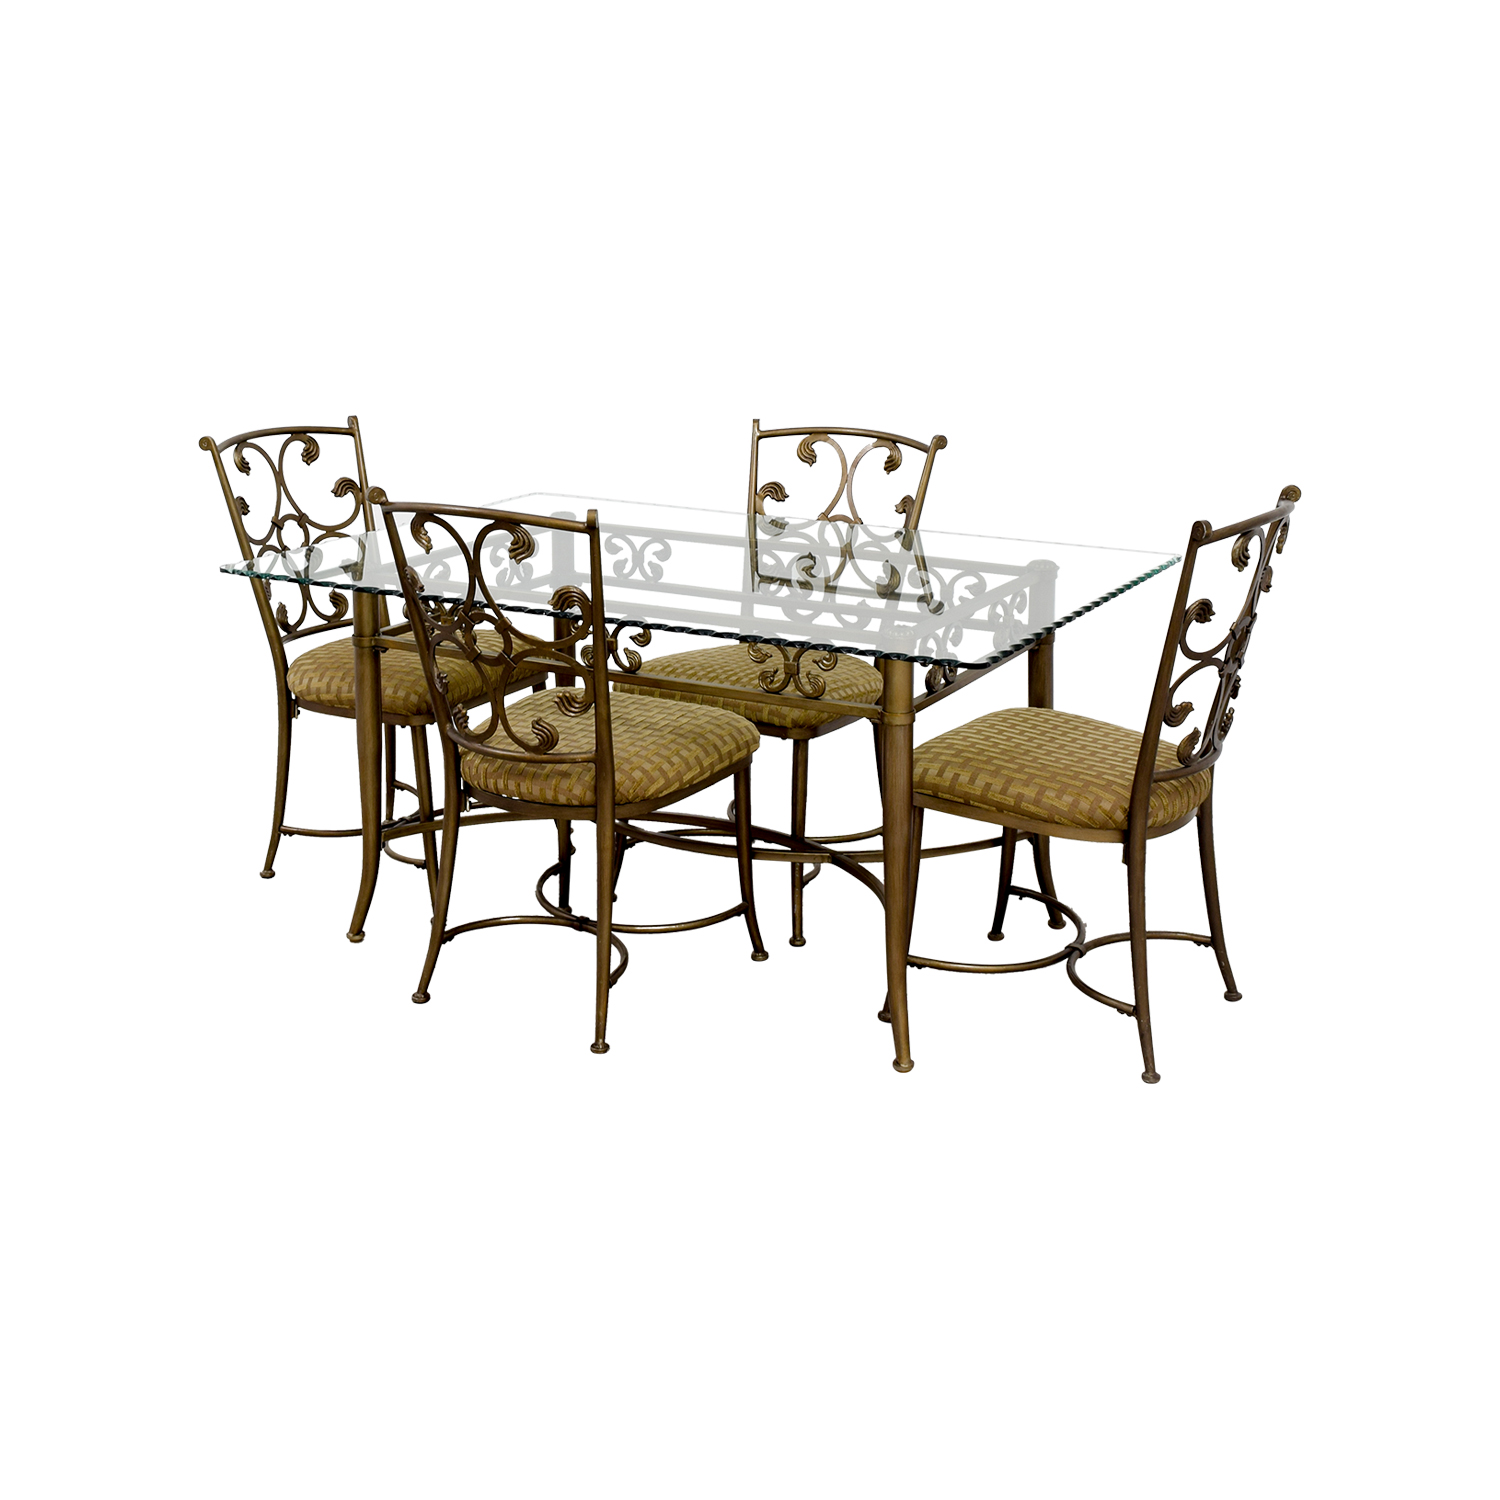 ... Glass And Gold Wrought Iron Dining Set Tables ...